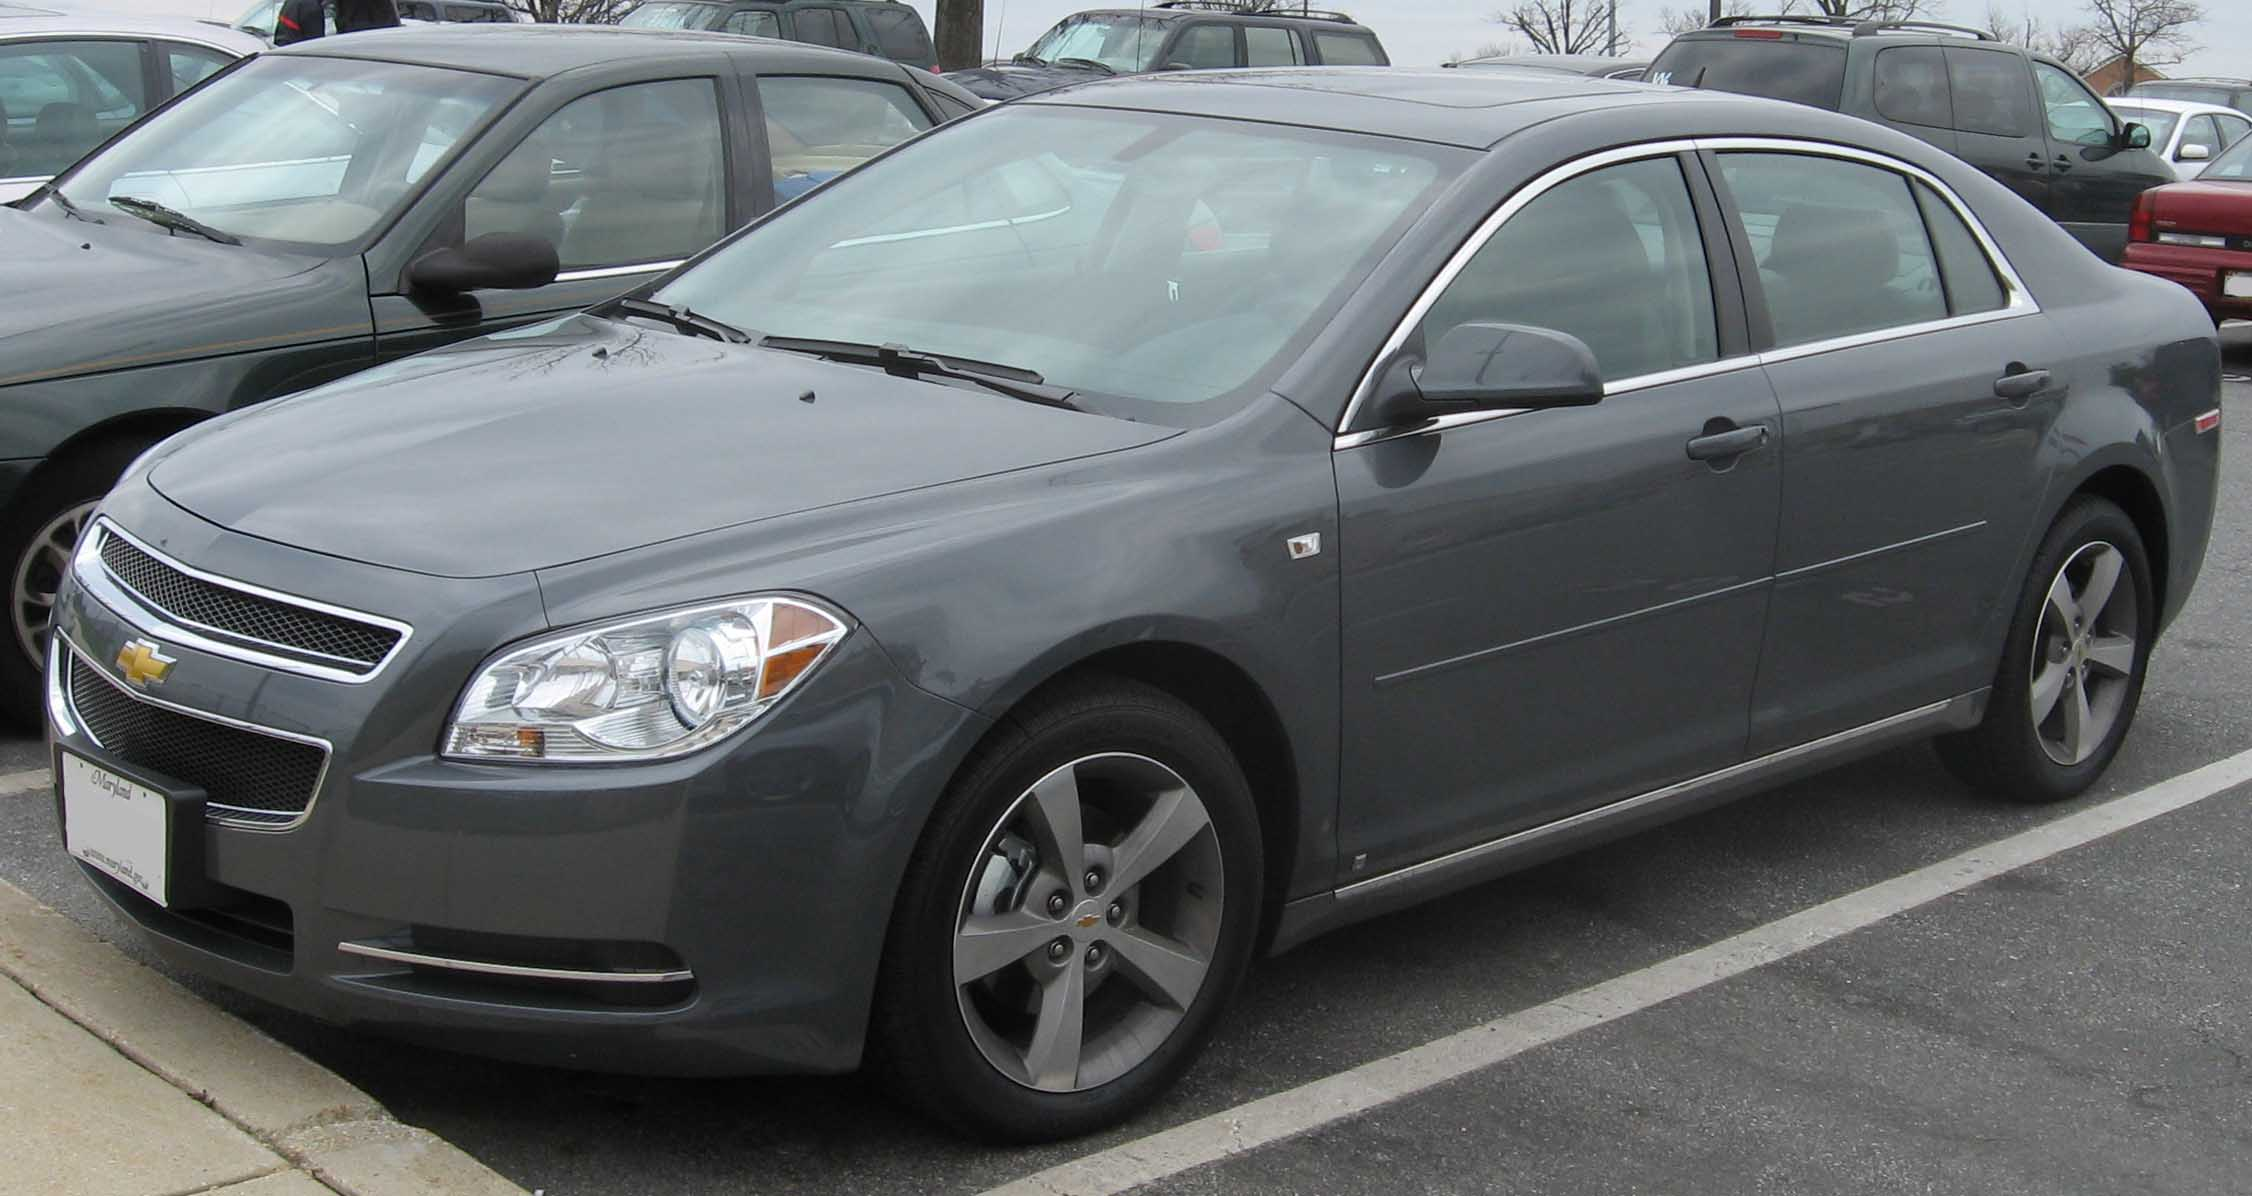 2008 chevy malibu swm 5 lnb wiring diagram chevrolet  pictures information and specs